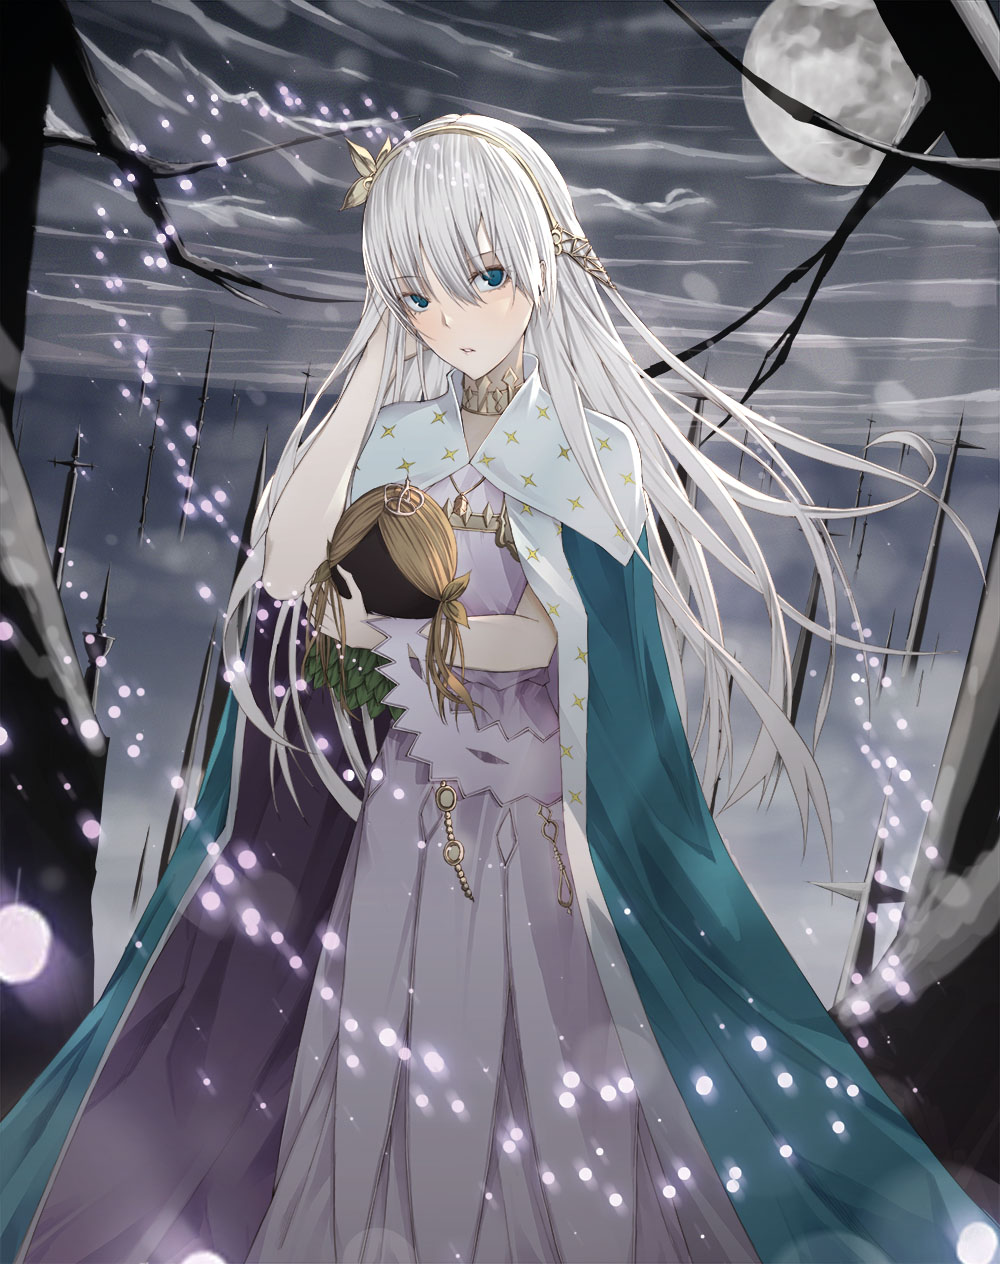 Caster Anastasia Nikolaevna Romanova Fate Grand Order Image 2390403 Zerochan Anime Image Board Zerochan has 661 caster (anastasia nikolaevna romanova) anime images, wallpapers, android/iphone wallpapers, fanart, cosplay pictures, and many more in its gallery. caster anastasia nikolaevna romanova